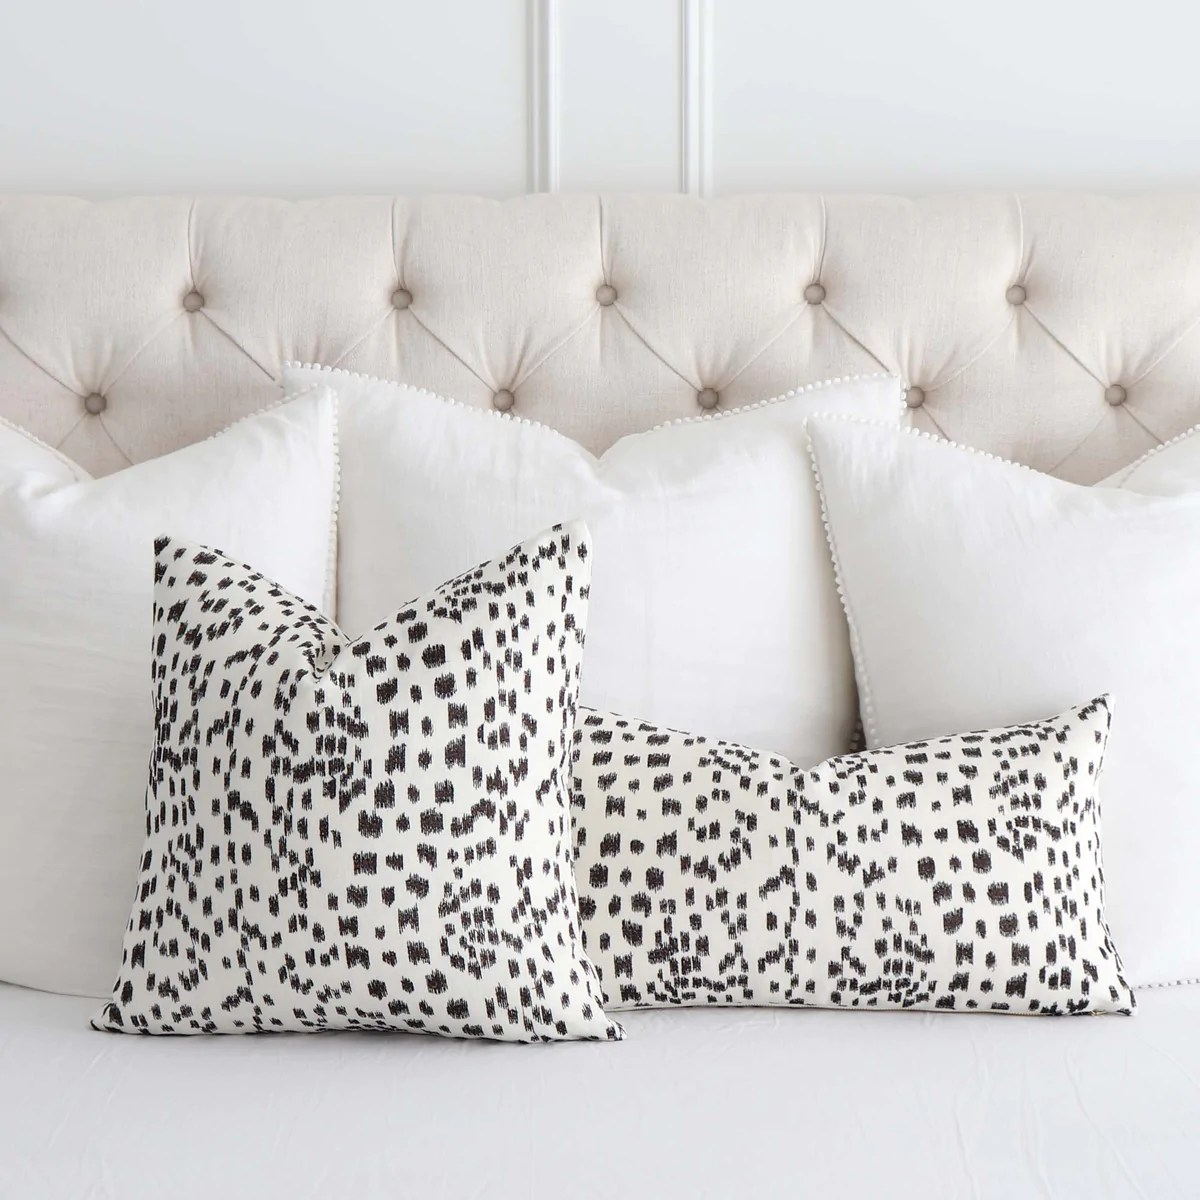 handcrafted 26 x 26 pillow cover